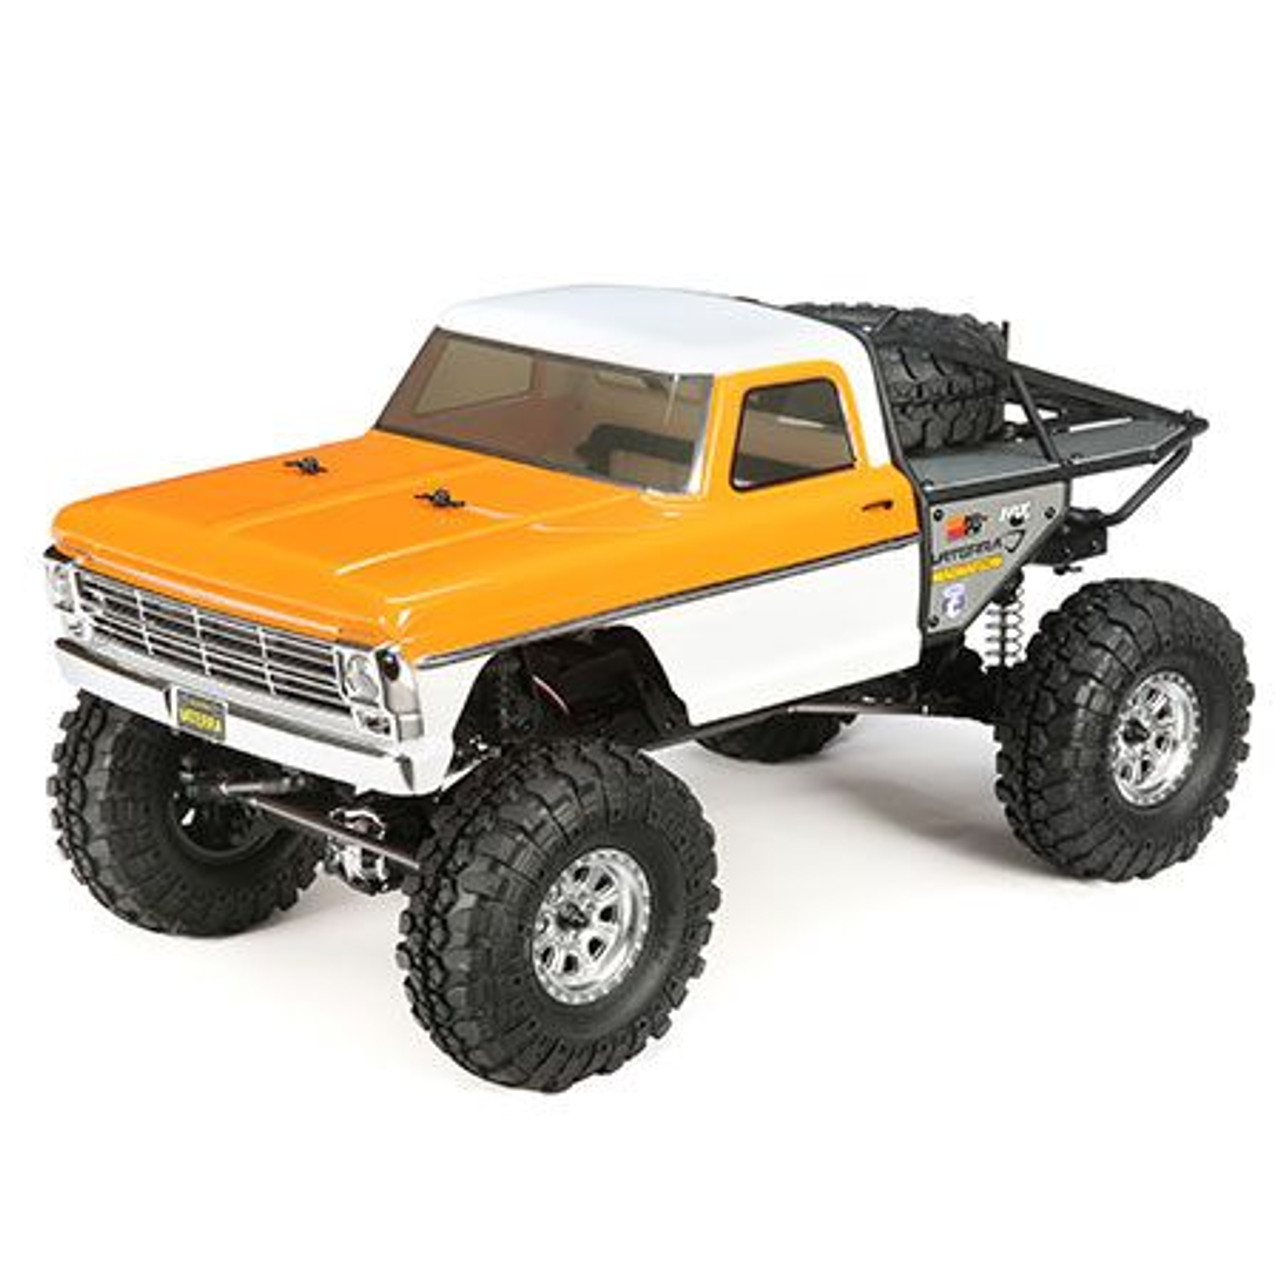 Vaterra 1968 Ford F-100 Ascender Rock Crawler 1:10 4wd